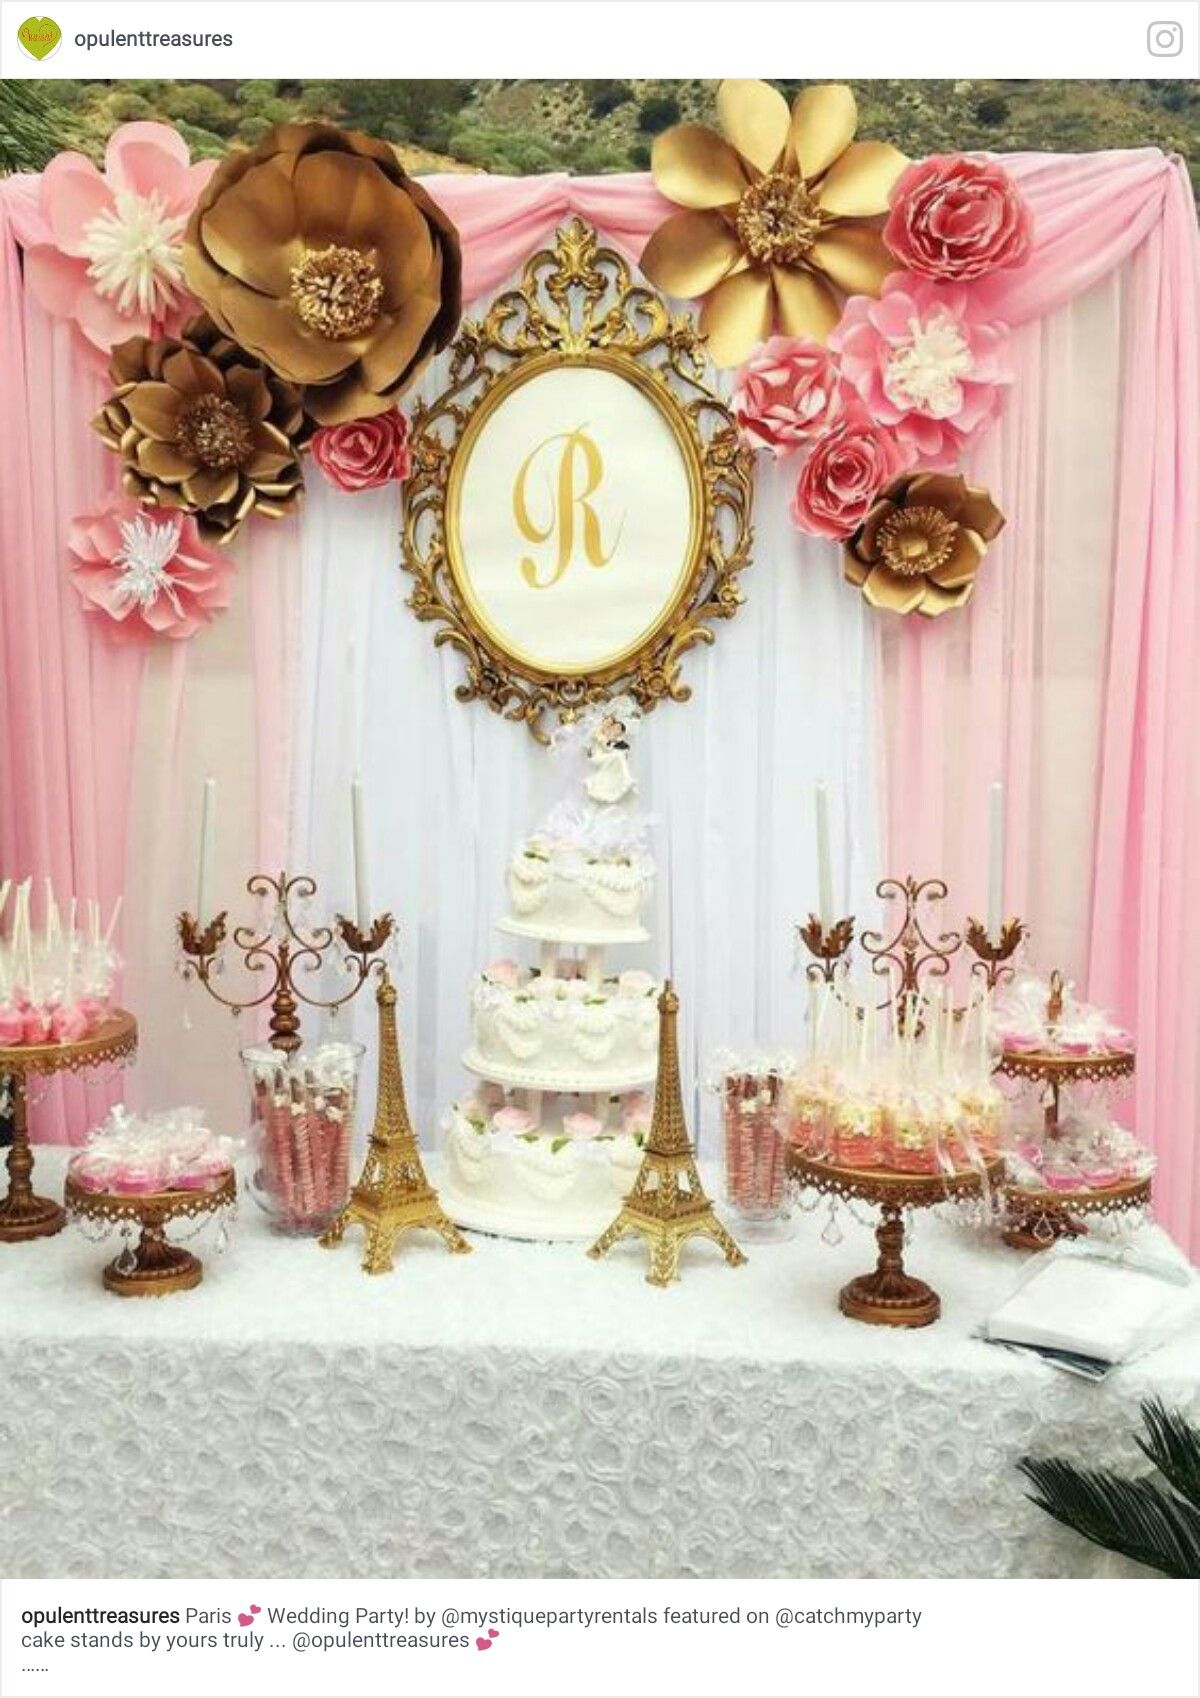 Pin by yonnie smith on birthdays anniversaries party ideas gorgeous pink and gold paris themed wedding party see more party ideas at junglespirit Gallery